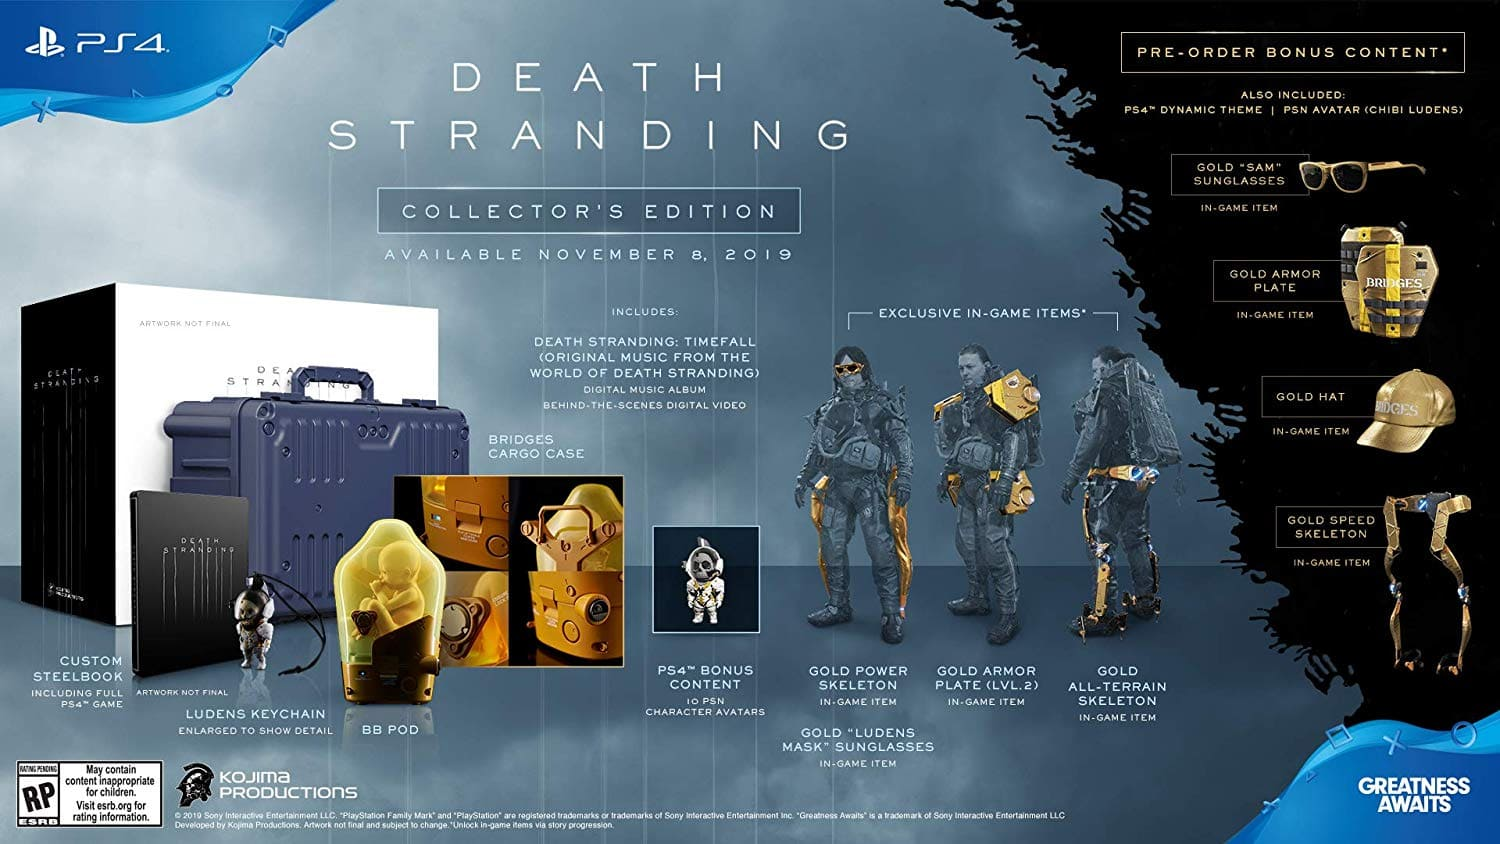 Death Stranding - PlayStation 4 Collector's Edition [Collector's] $169.99